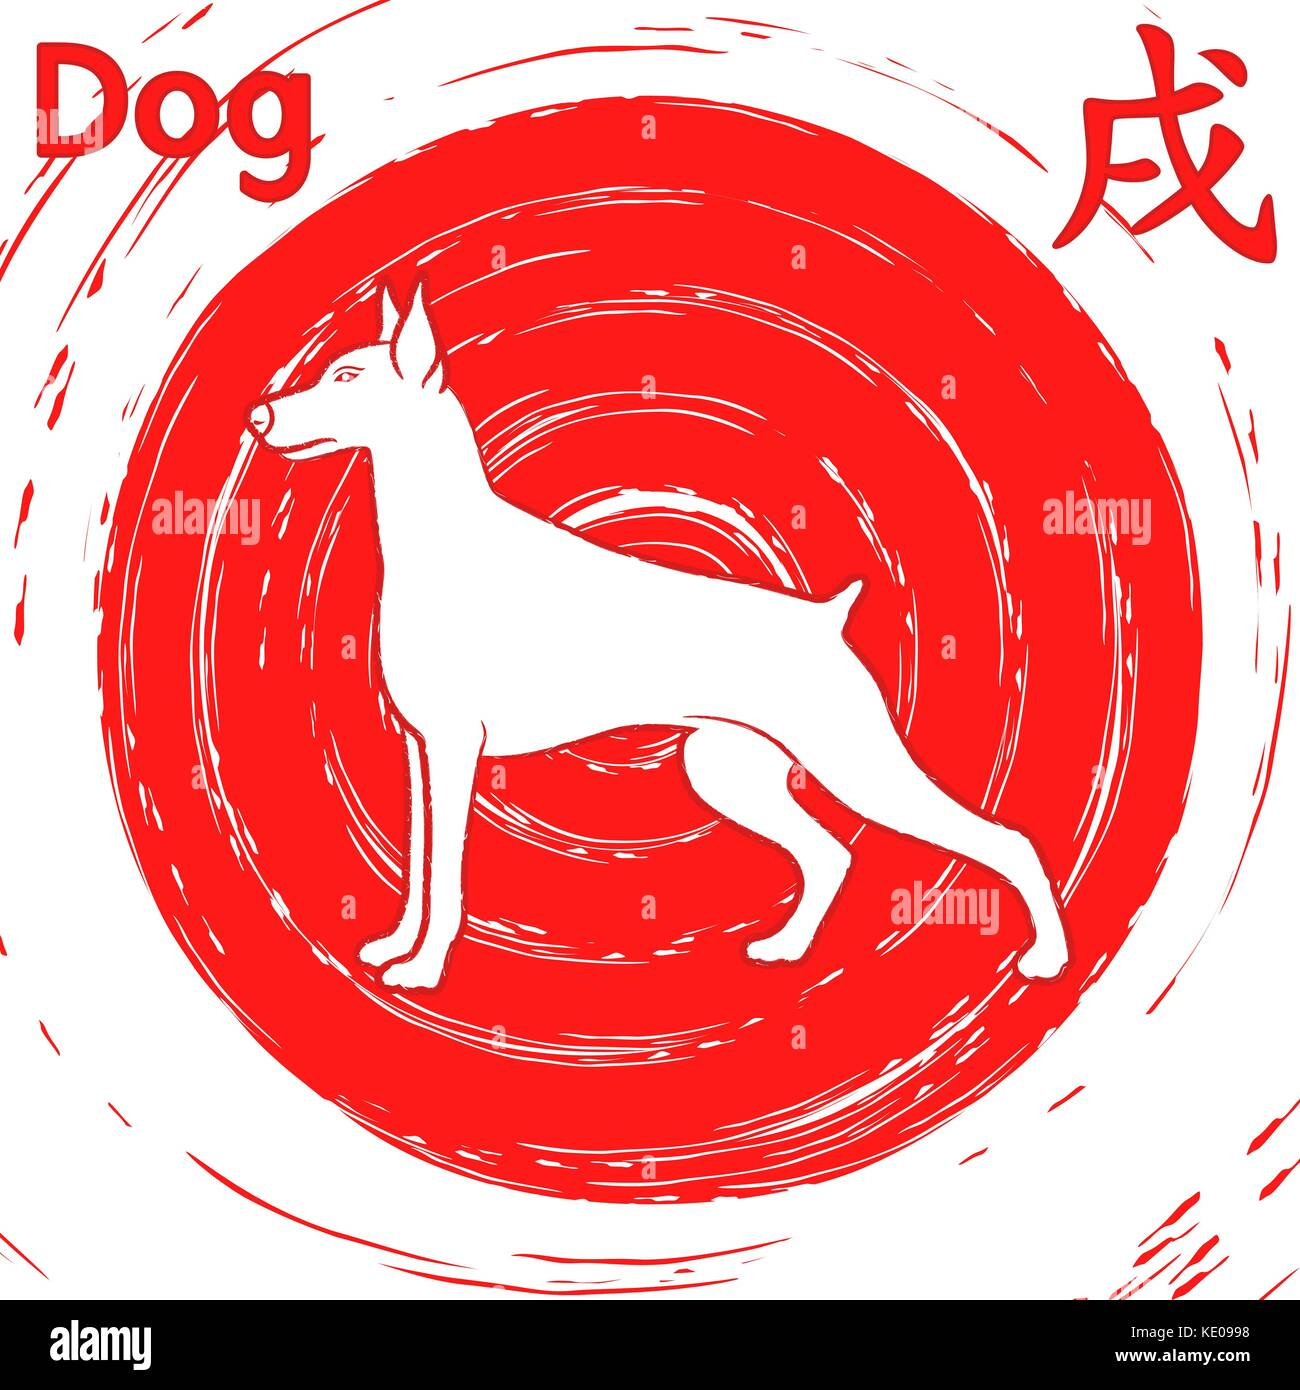 Chinese Zodiac Sign Dog over rotated whirl red background, symbol of New Year on the Eastern calendar, vector illustration - Stock Image